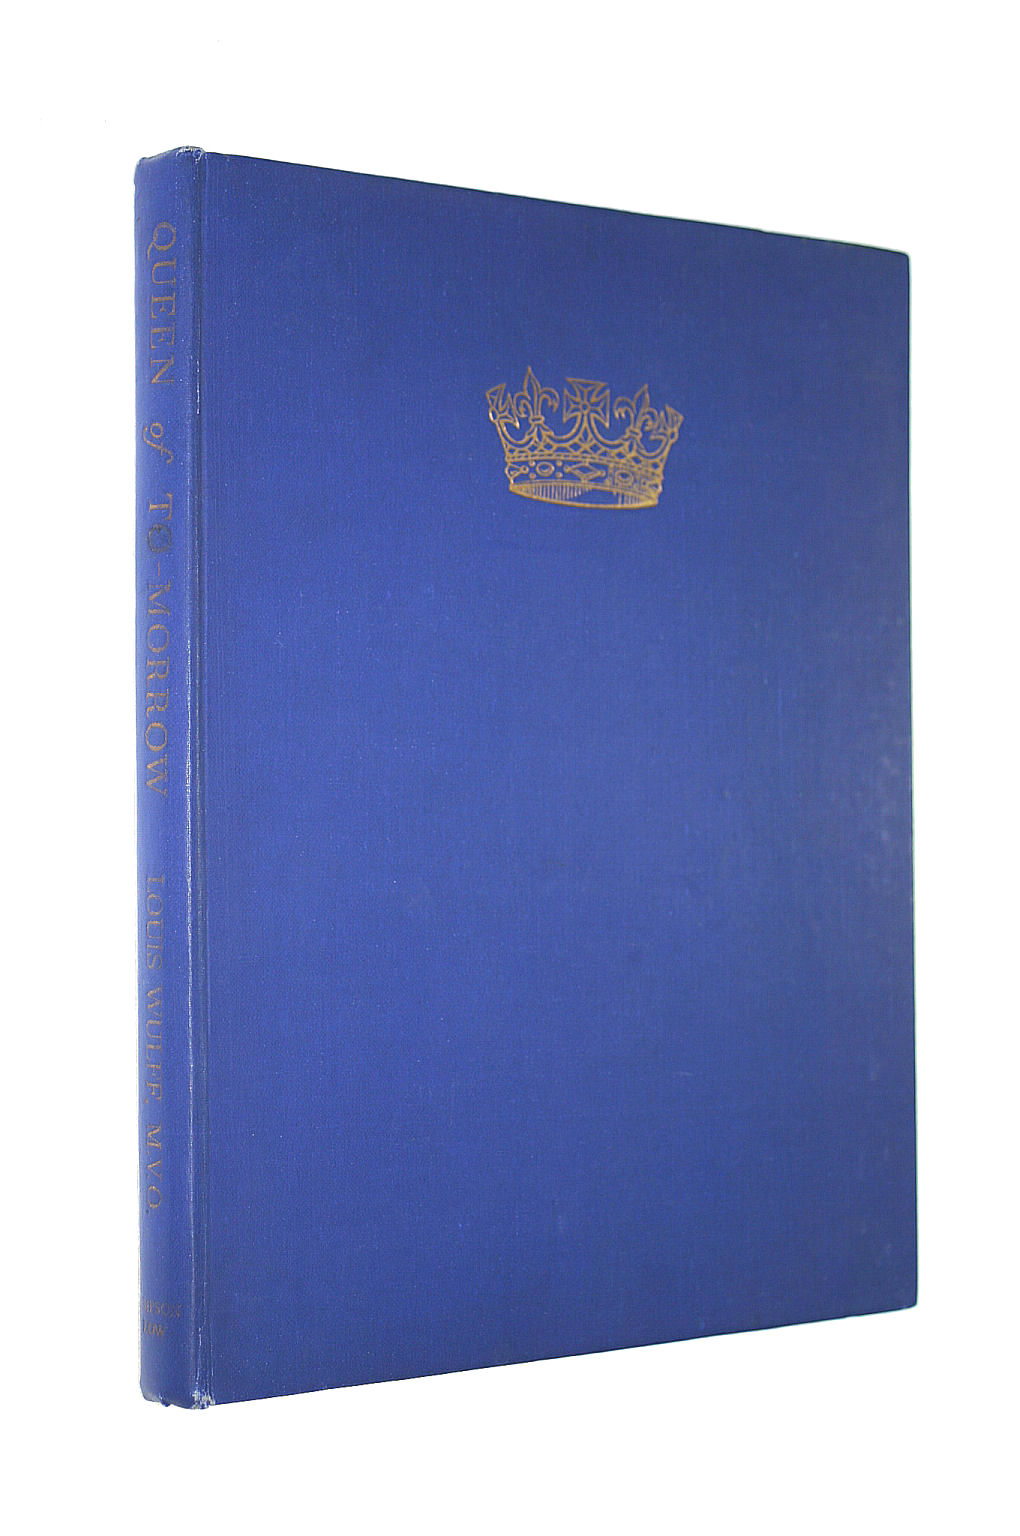 Image for Queen of to-Morrow: An Authentic Study of Hrh the Princess Elizabeth